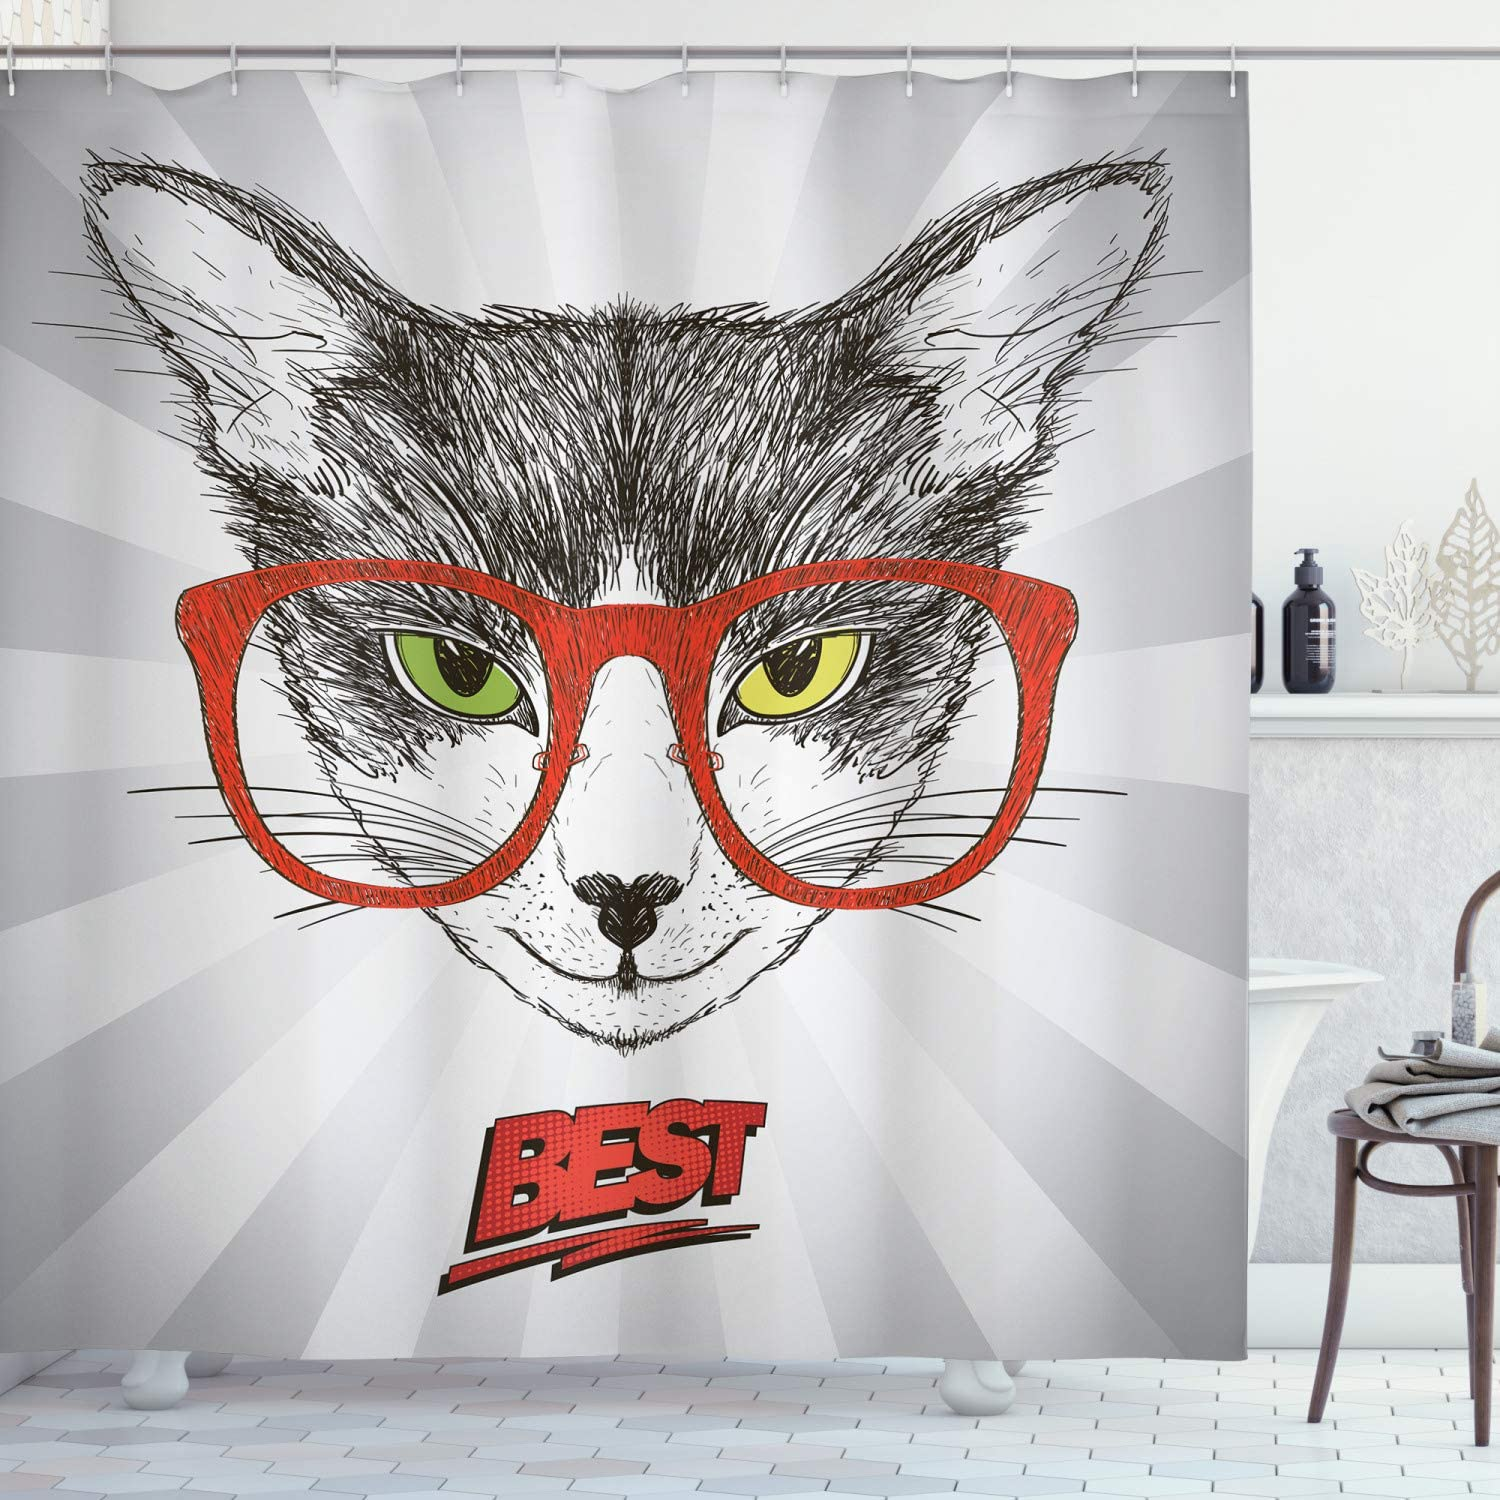 Ambesonne Nerdy Shower Curtain, Cat Portrait Hipster Glasses on Starburst Stripes Best Wording, Cloth Fabric Bathroom Decor Set with Hooks, 84